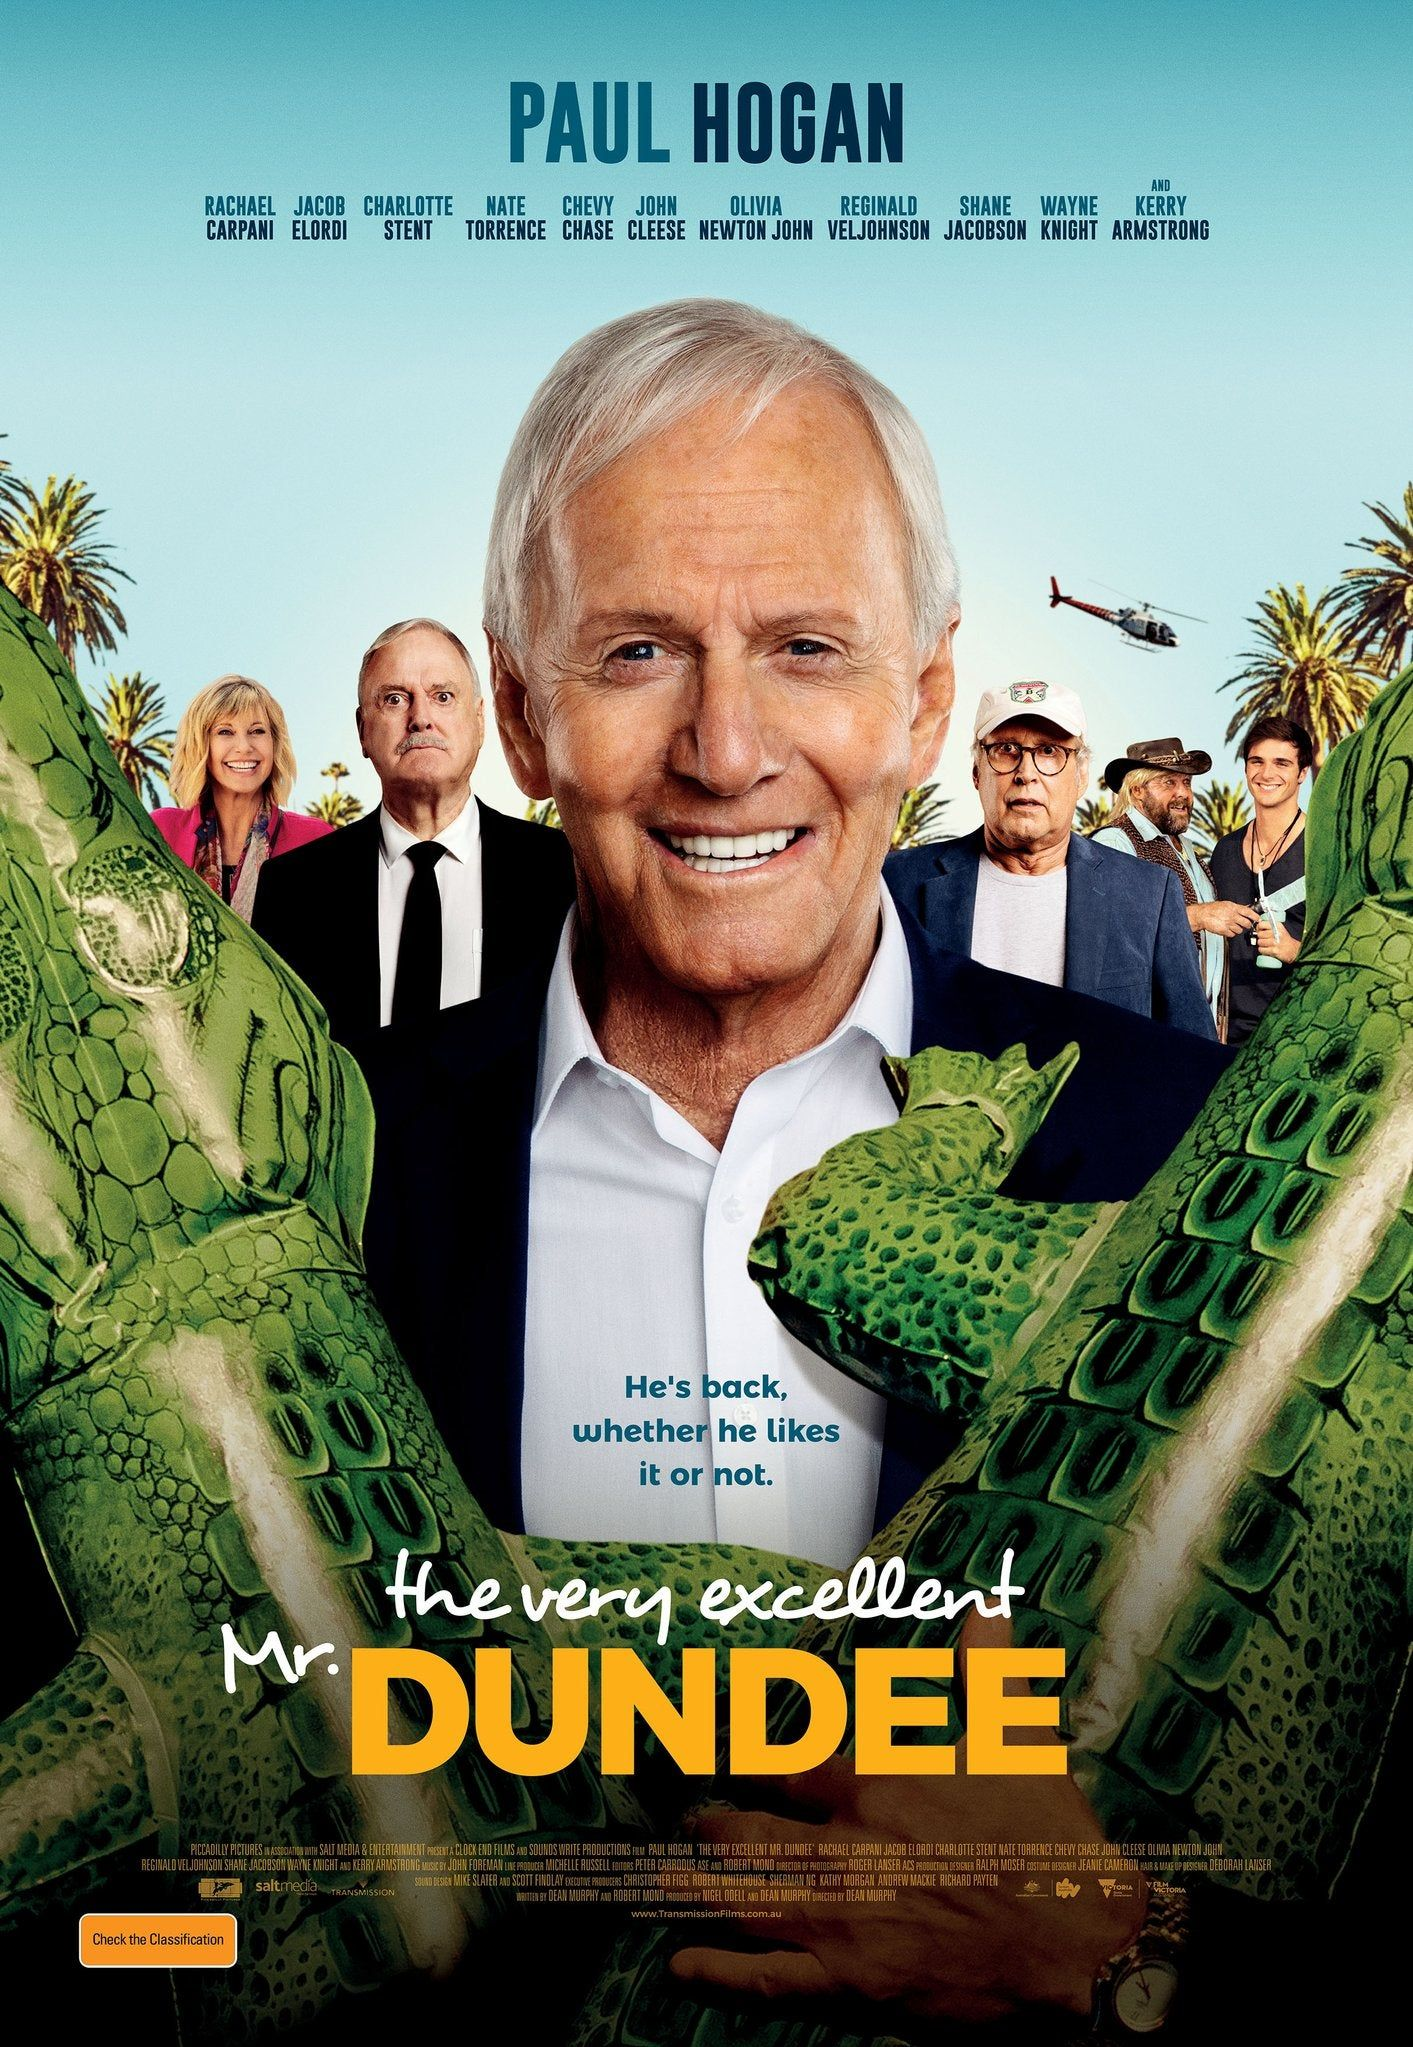 The Very Excellent Mr Dundee In 2020 Paul Hogan Dundee Luke Hemsworth